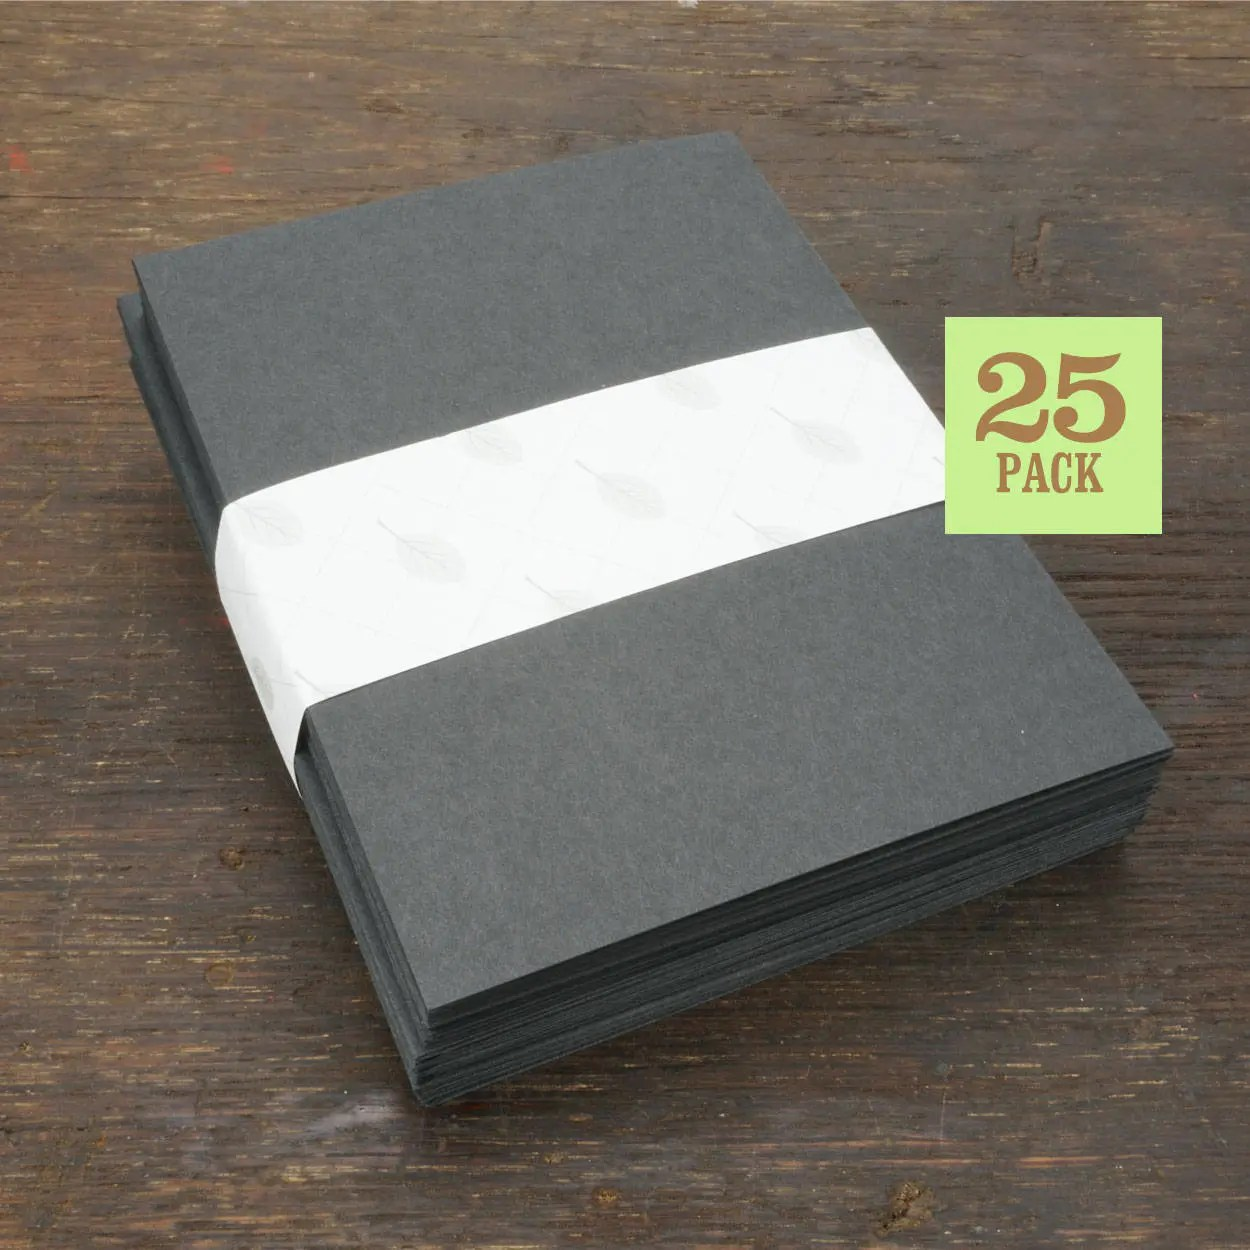 size of notecards - Towerssconstruction